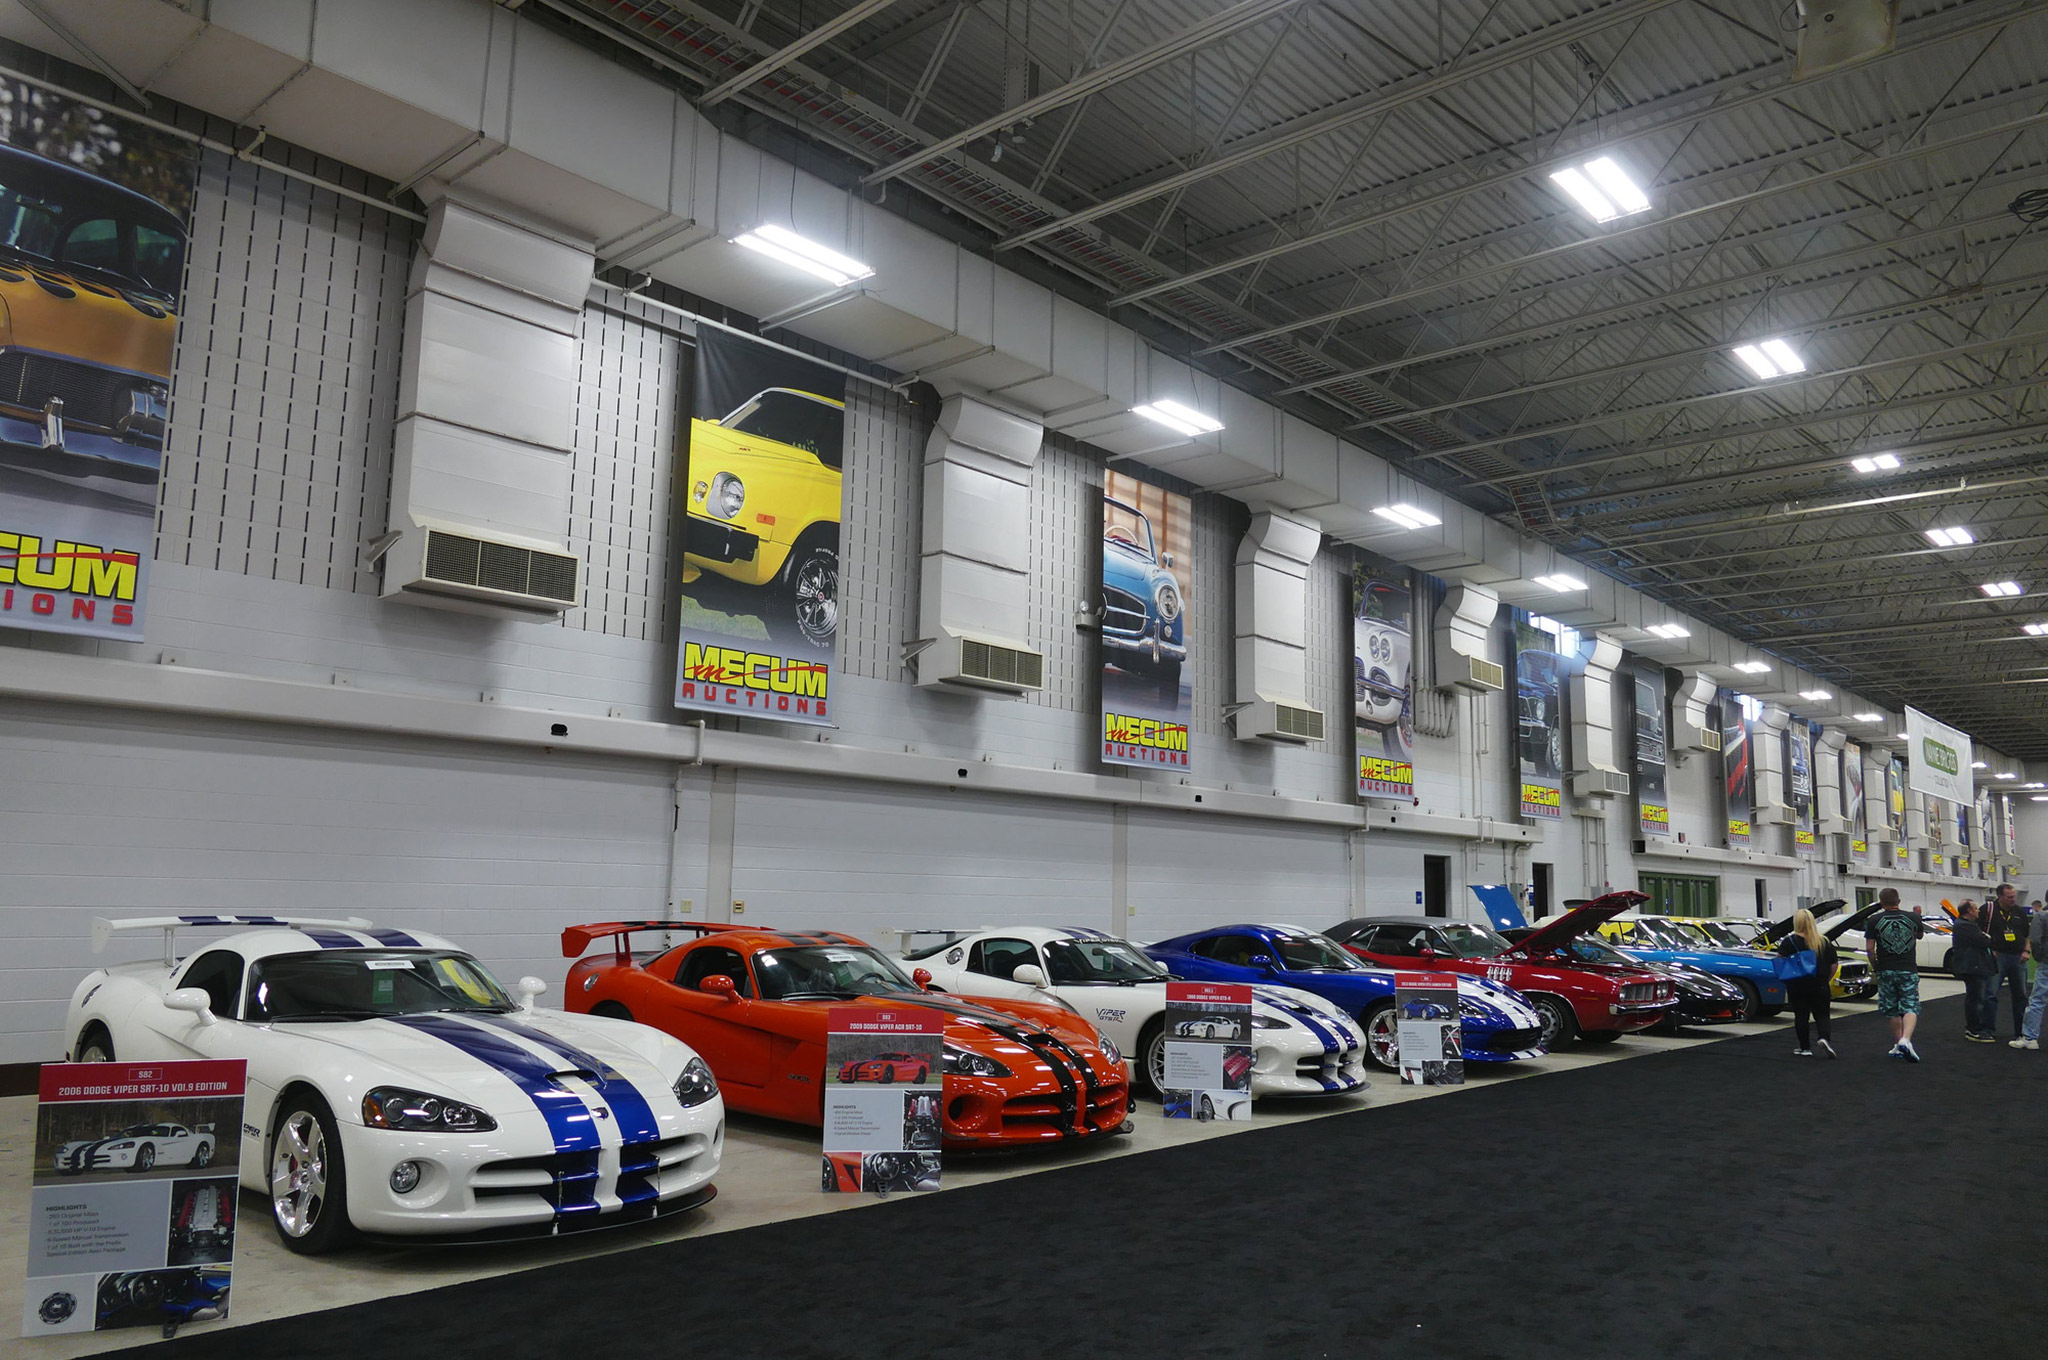 The Wayne Briggs collection consisted of unique collector-grade Vipers and Mopar iron, and was sold on Saturday morning.